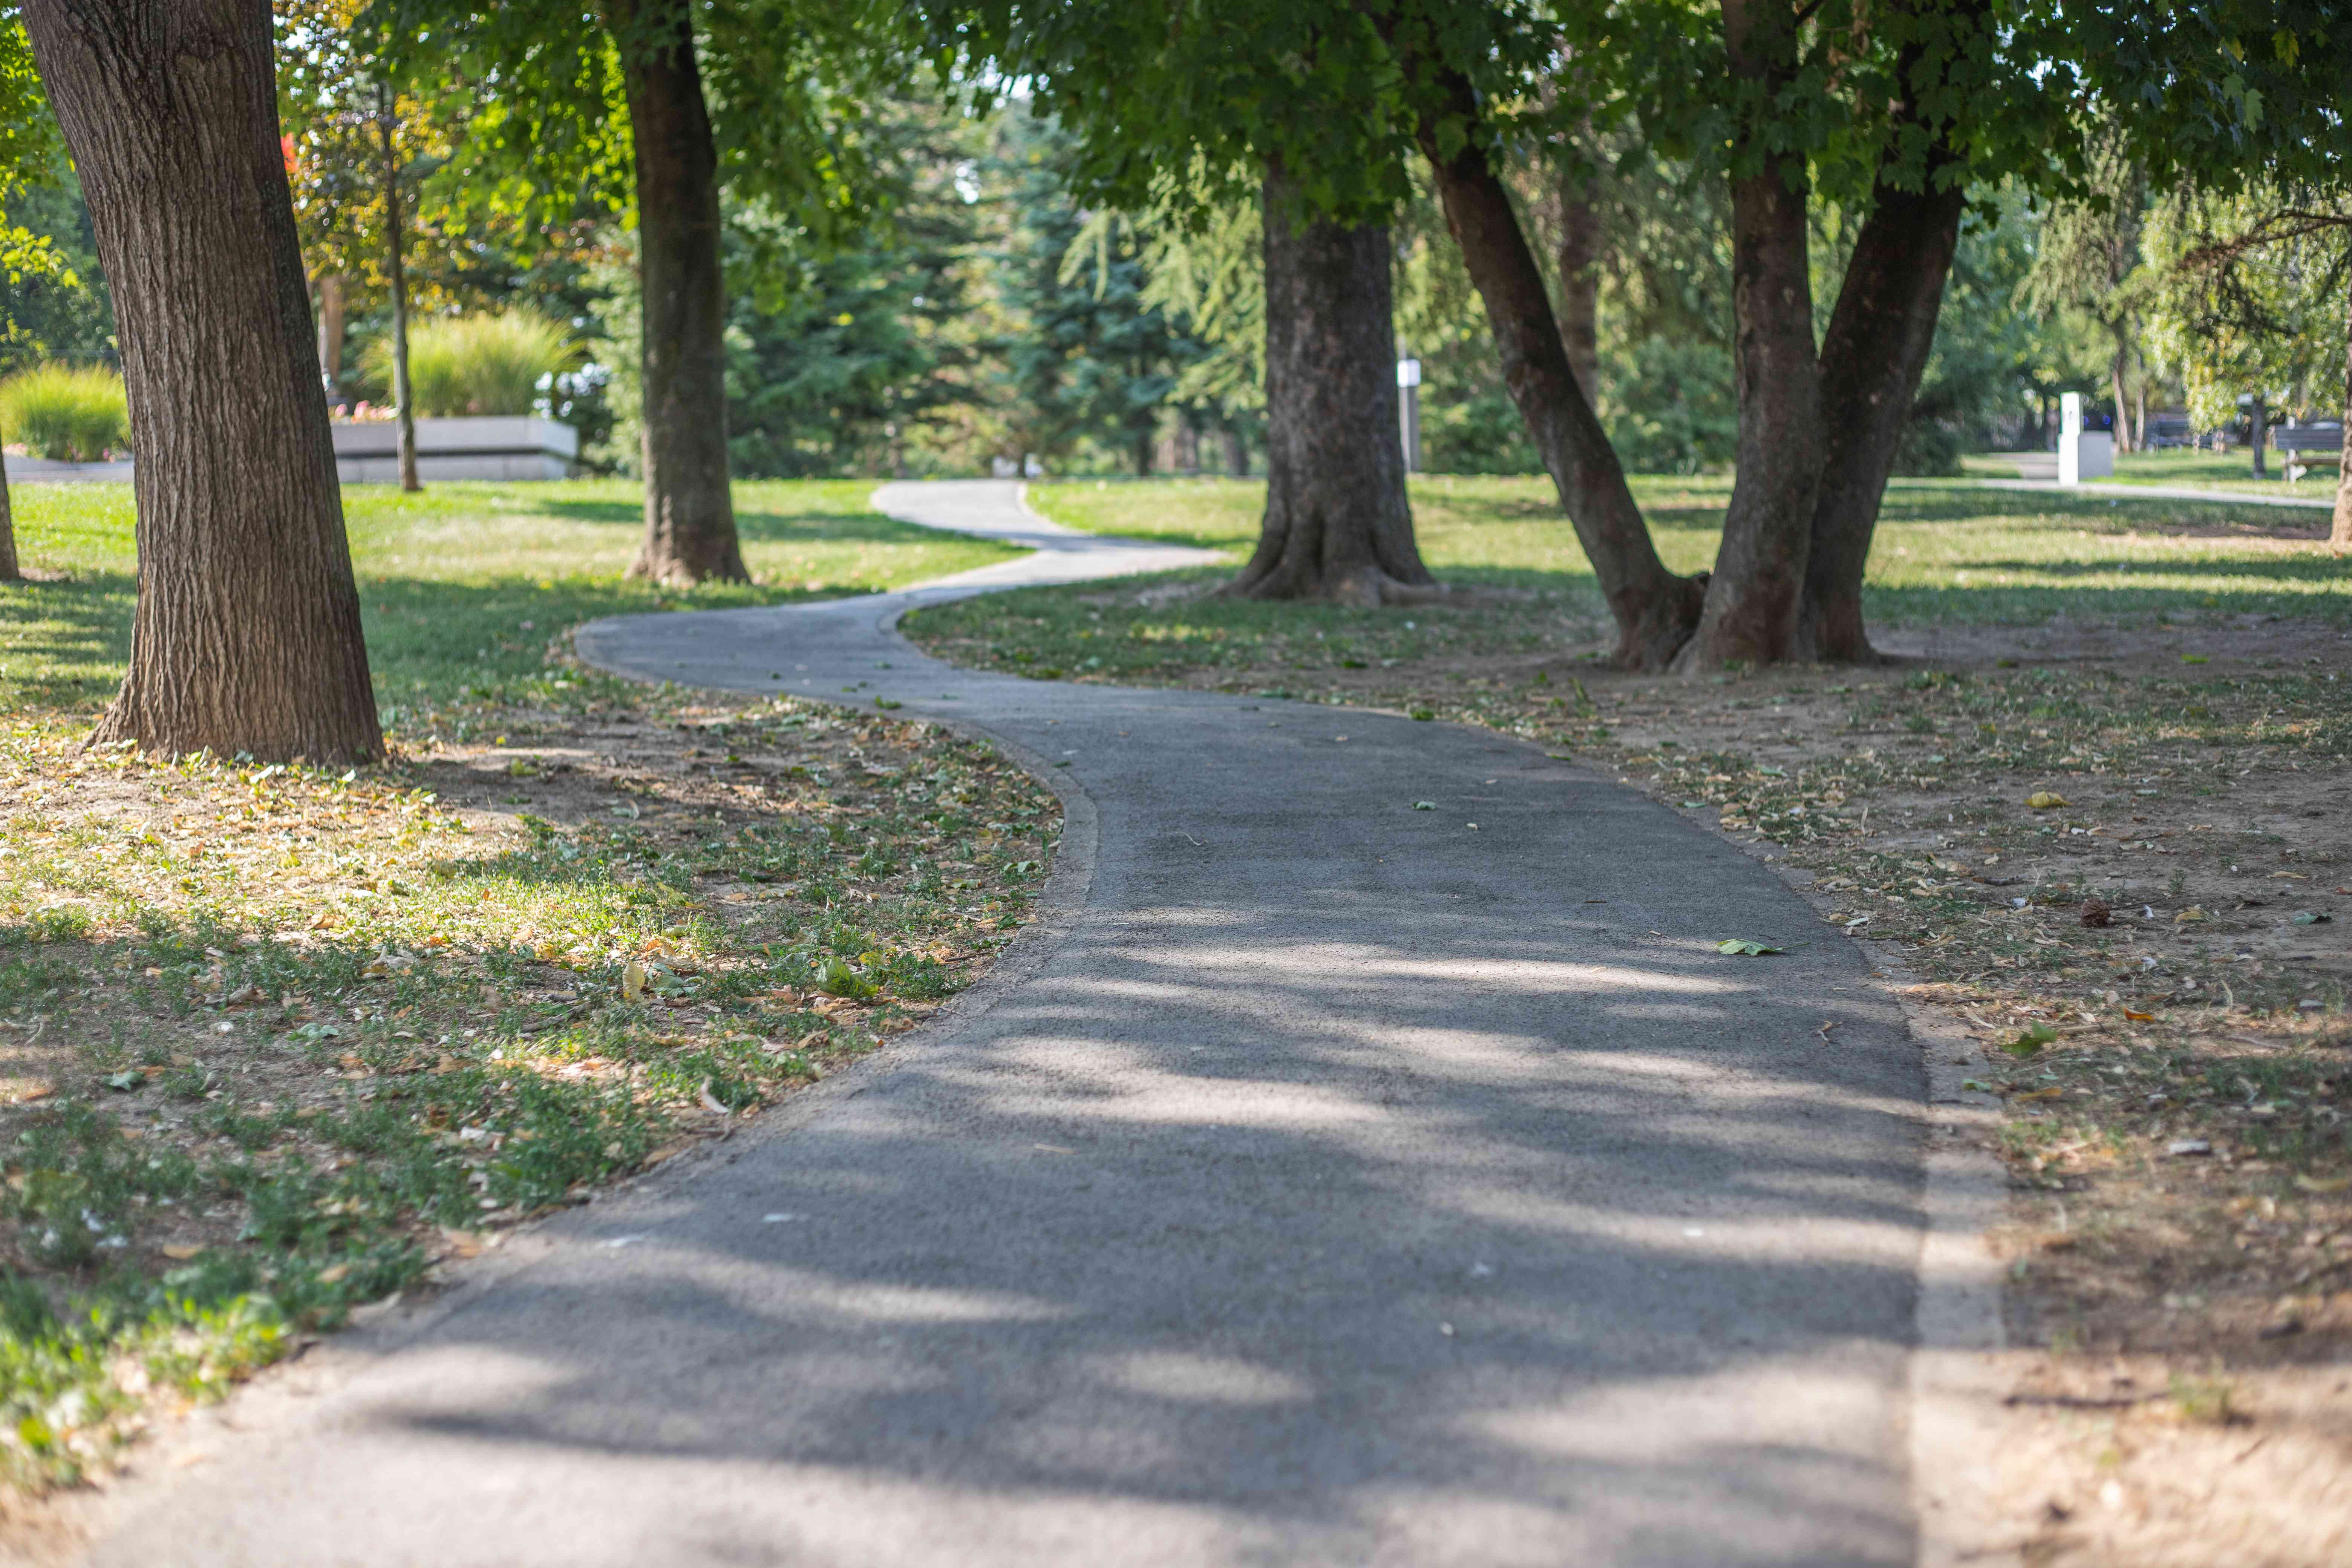 a paved winding walking path in a city park with mature trees